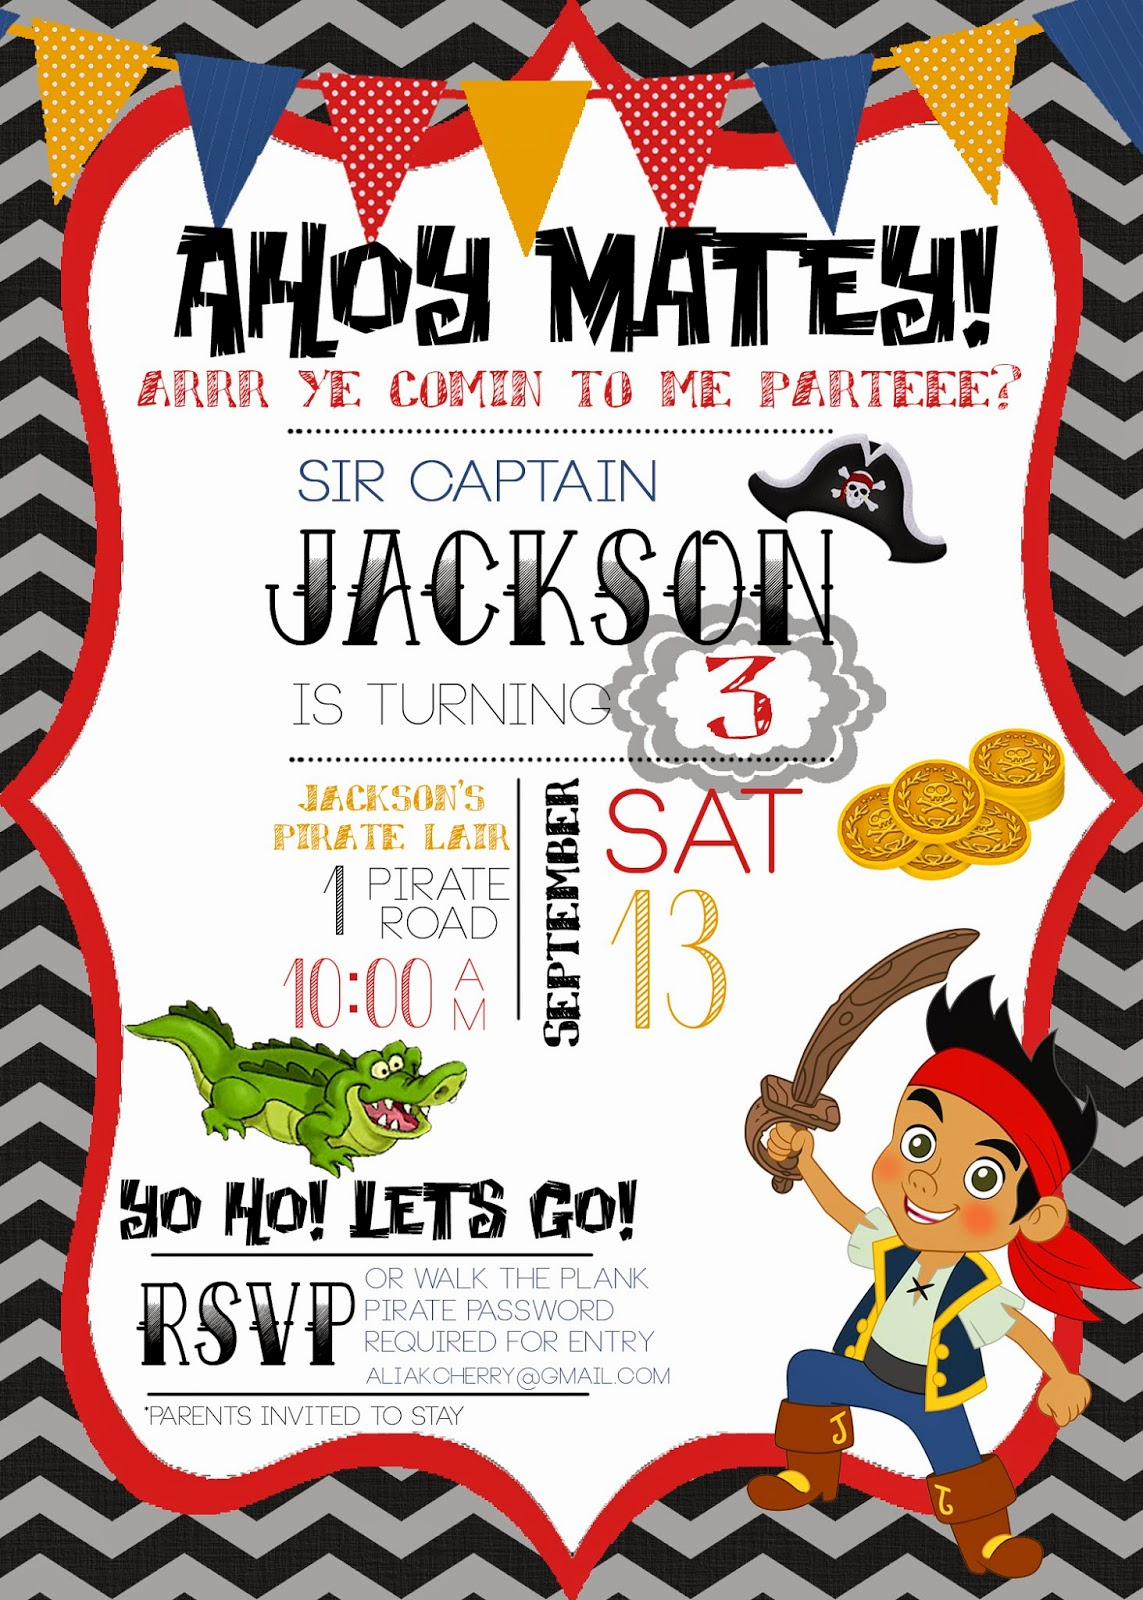 Pirate Party Invites was best invitation layout